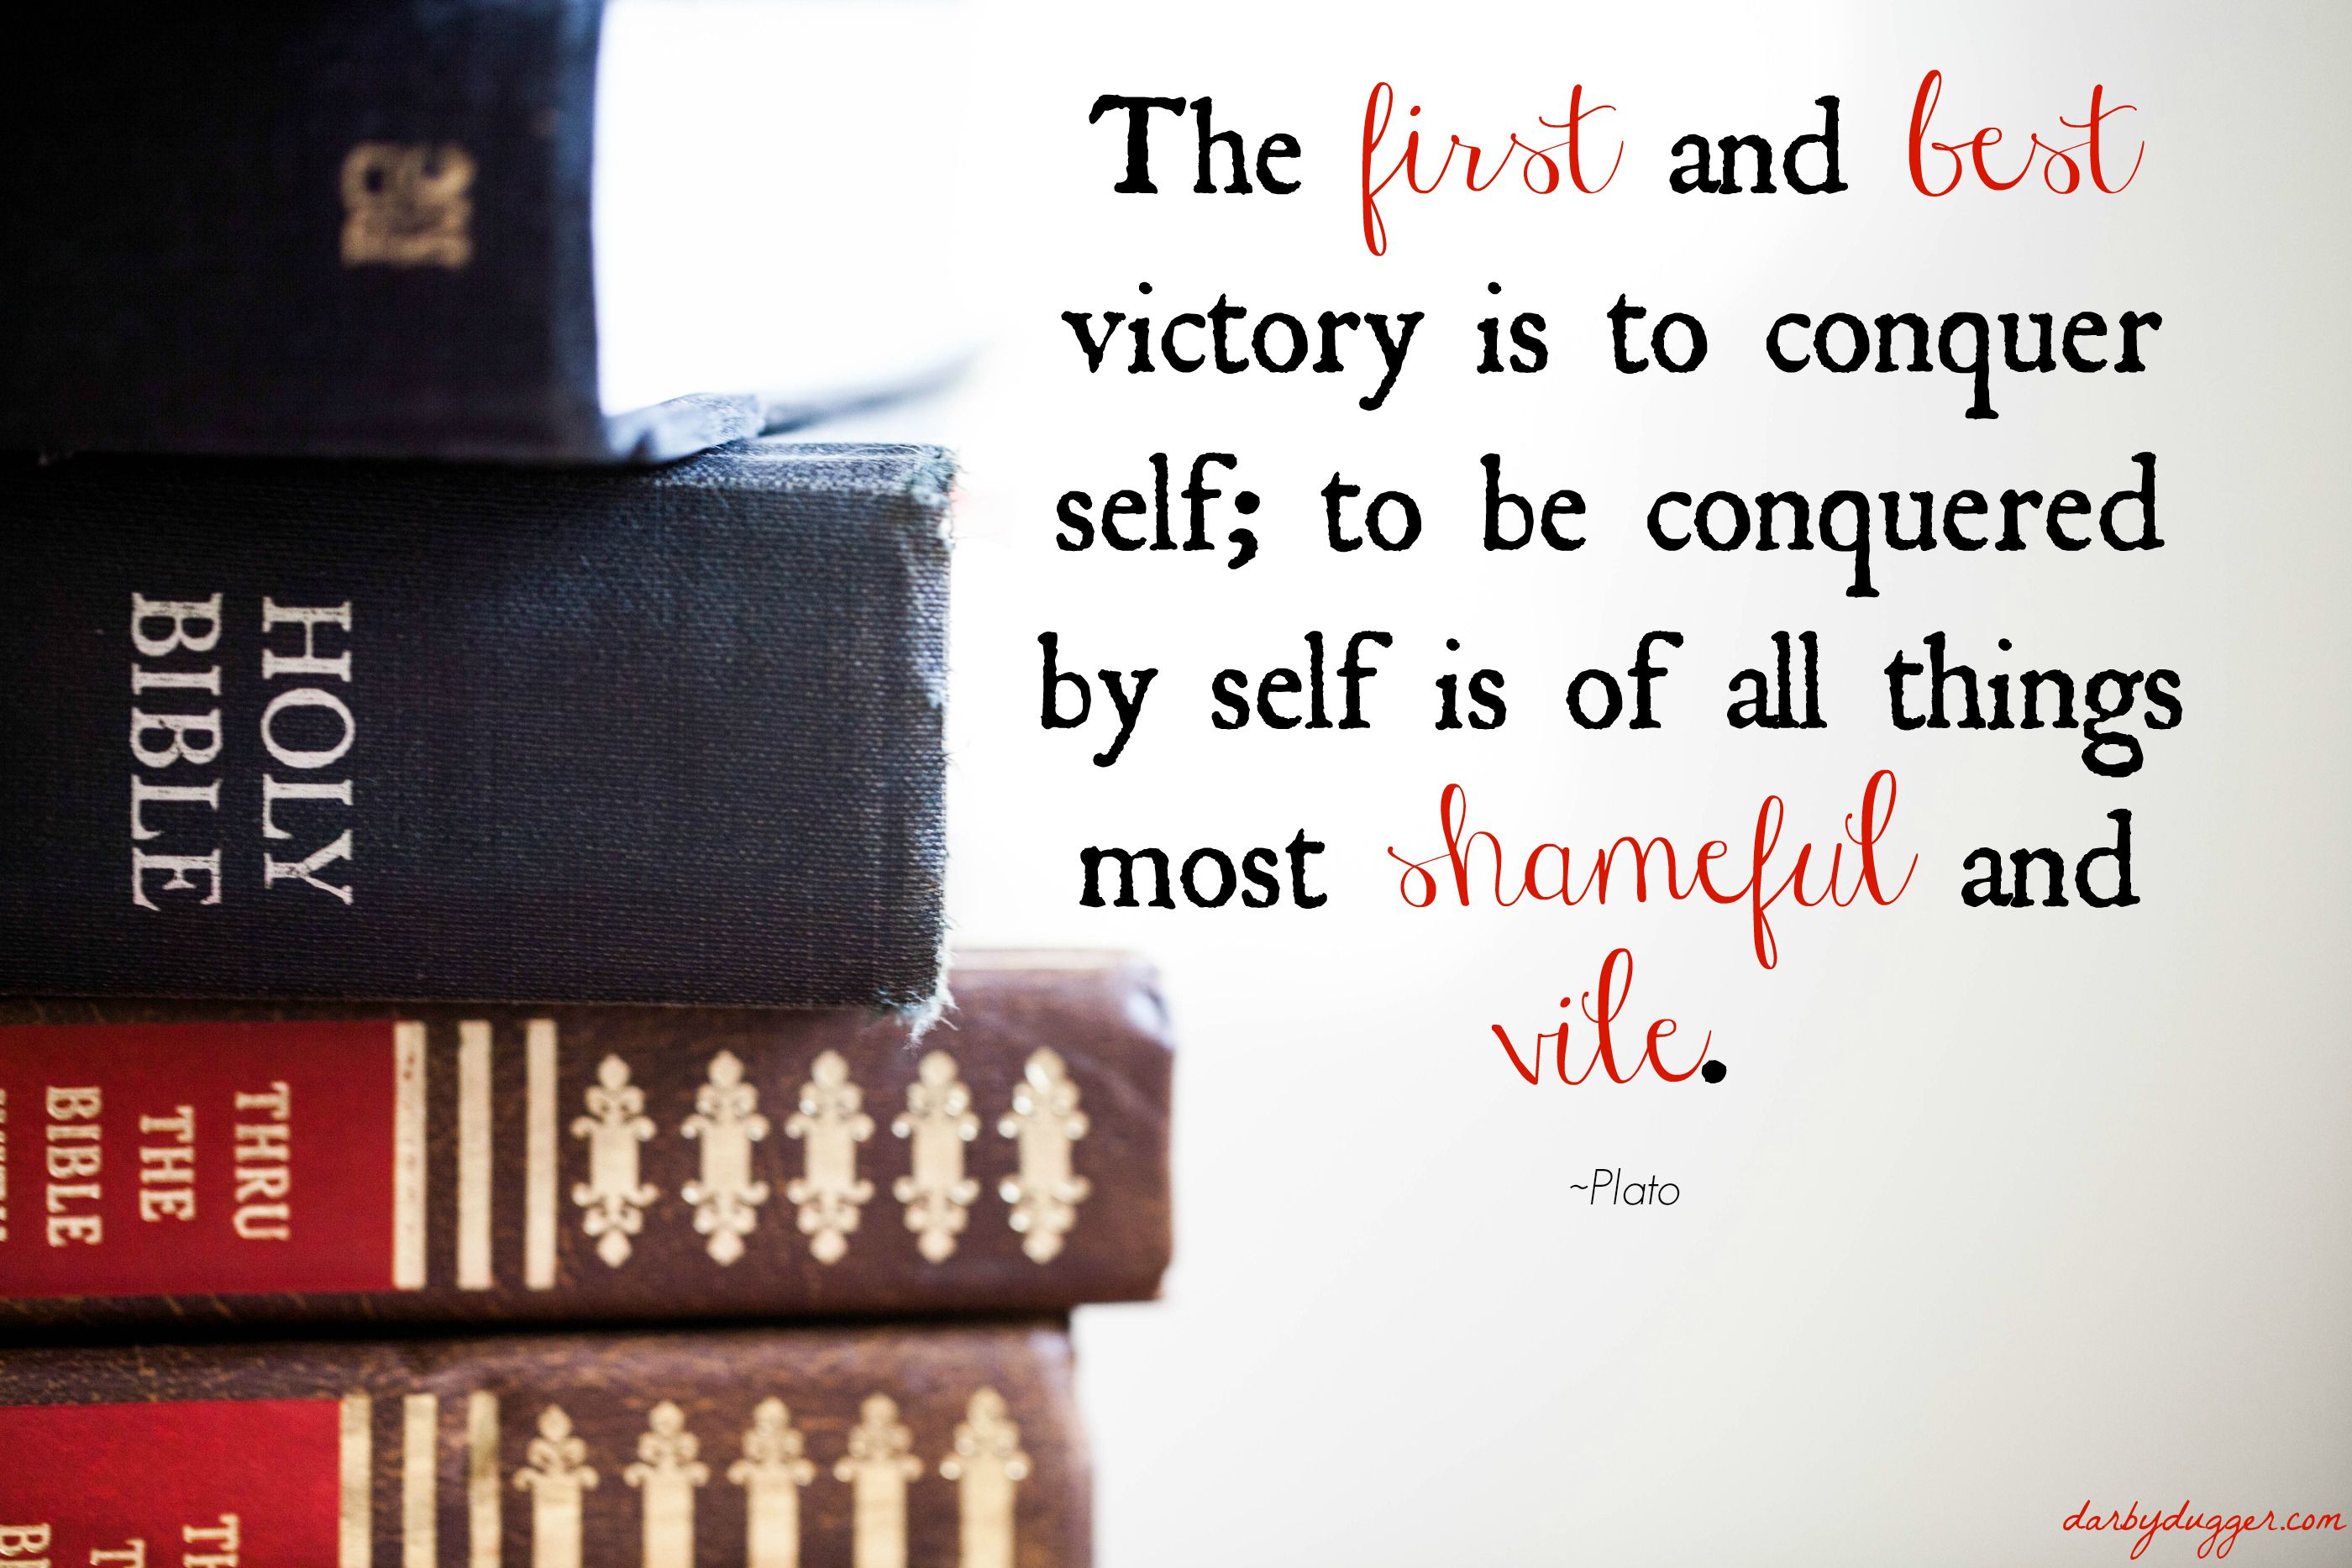 The first and best victory is to conquer self; to be conquered by self is of all things most shameful and vile. Plato